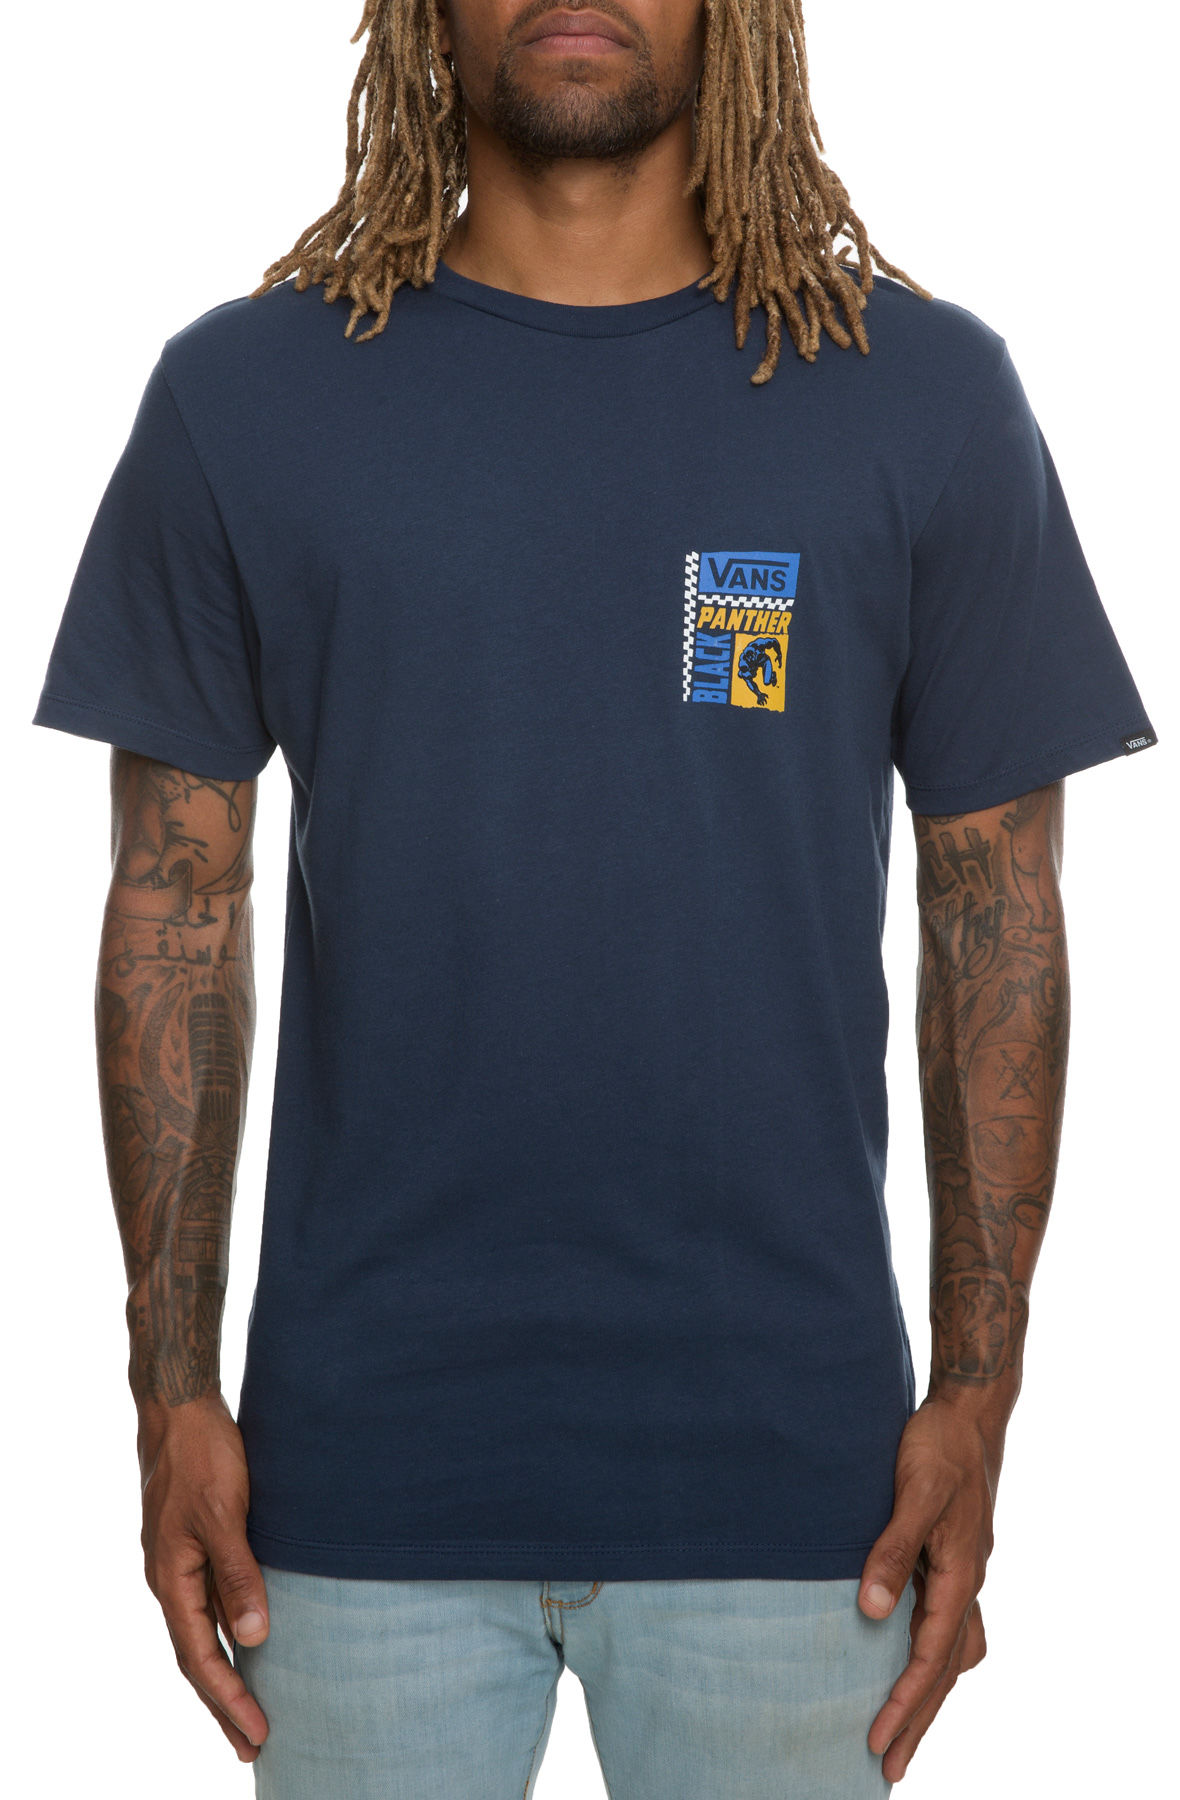 Image of The Vans x Marvel Black Panther Tee in Dress Blues